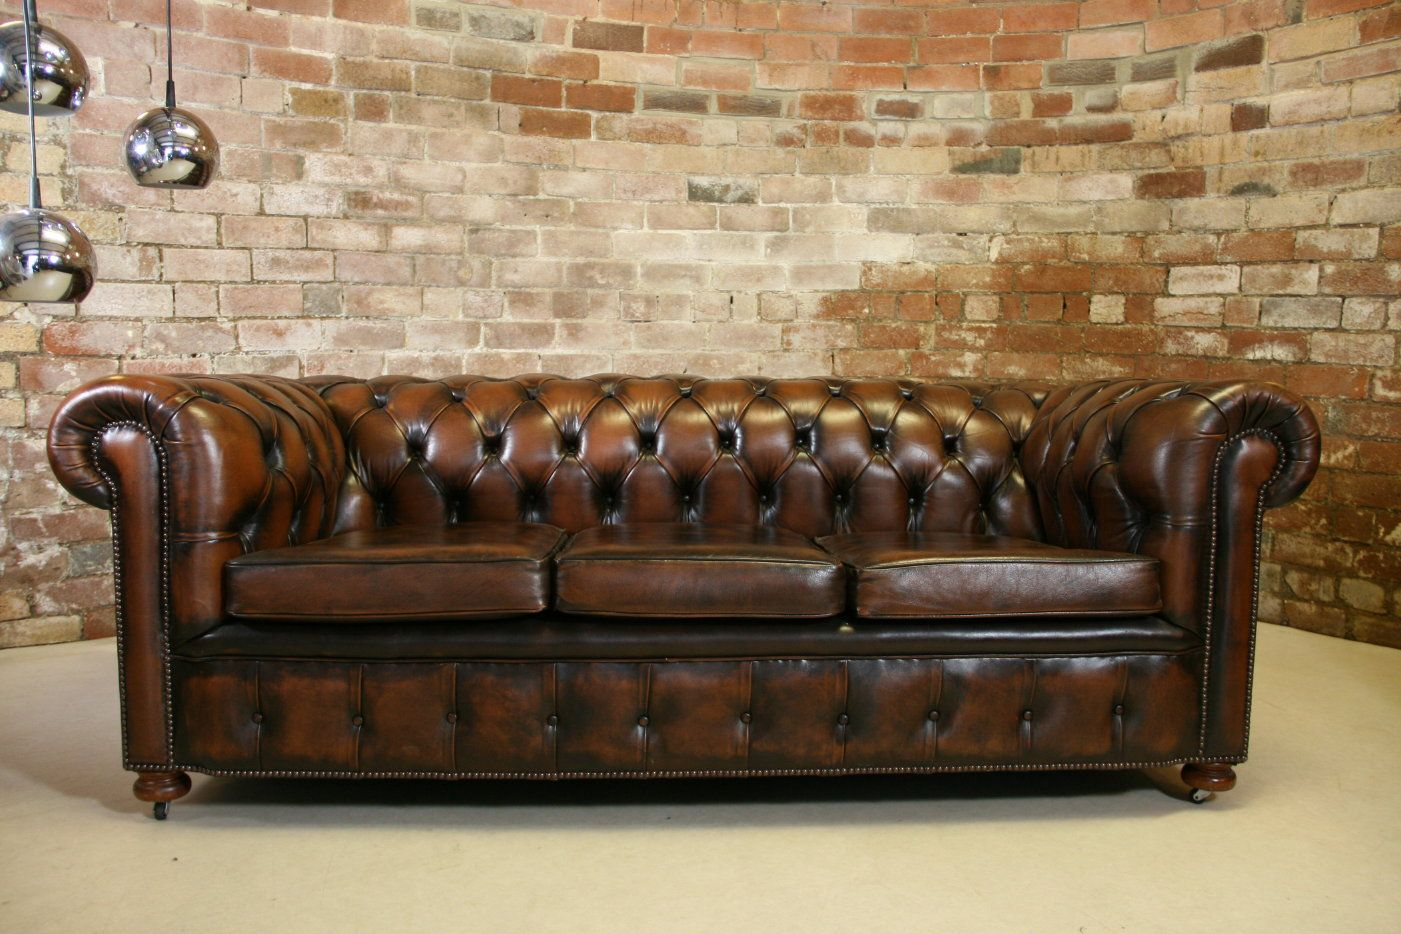 Vintage Chesterfield Antique Brown Leather 3 Seater Sofa Retro Buttoned Couch Chesterfield